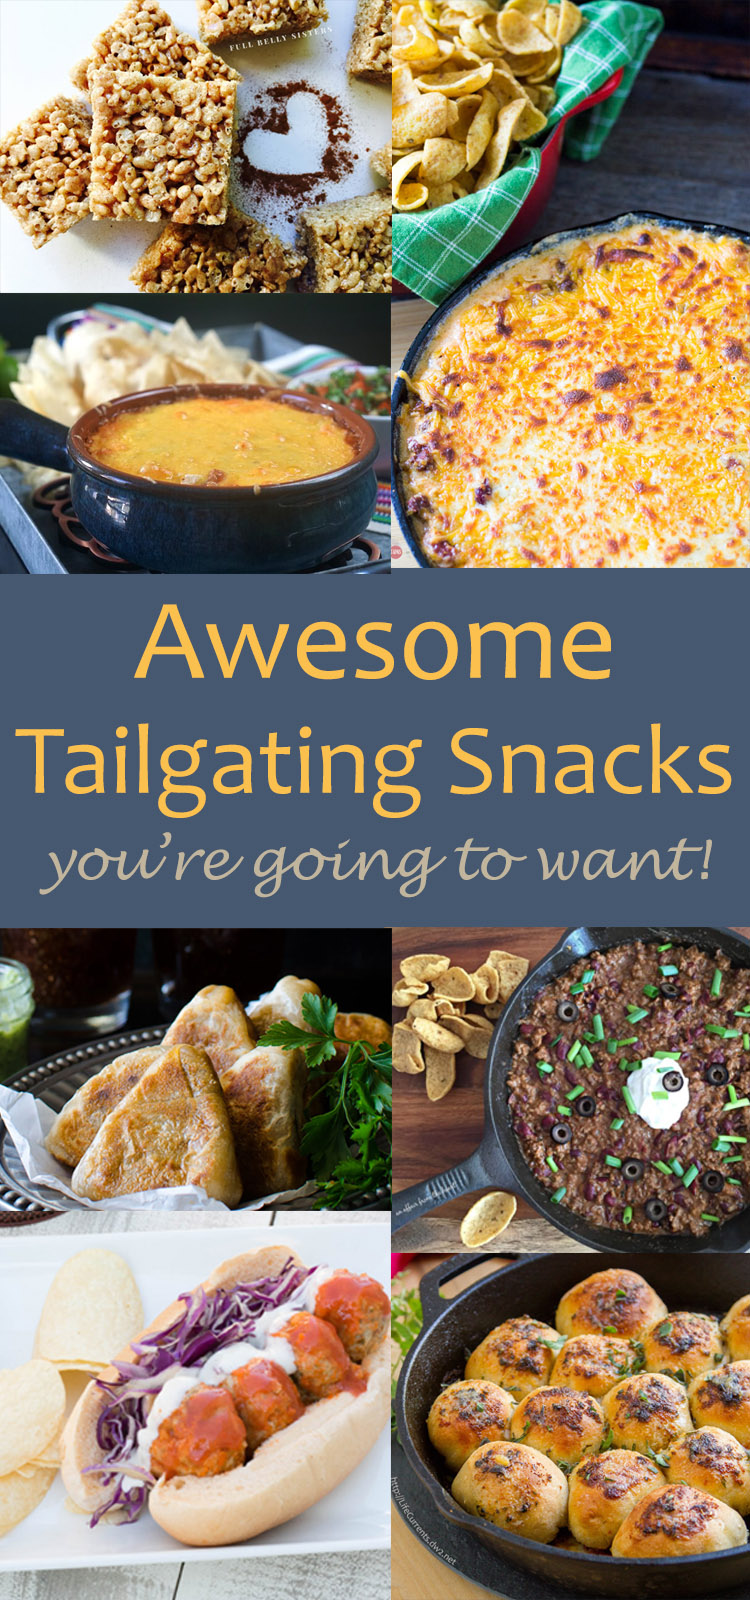 Amazingly Delicious - 12 Tailgating Snacks that you're gonna want to eat!